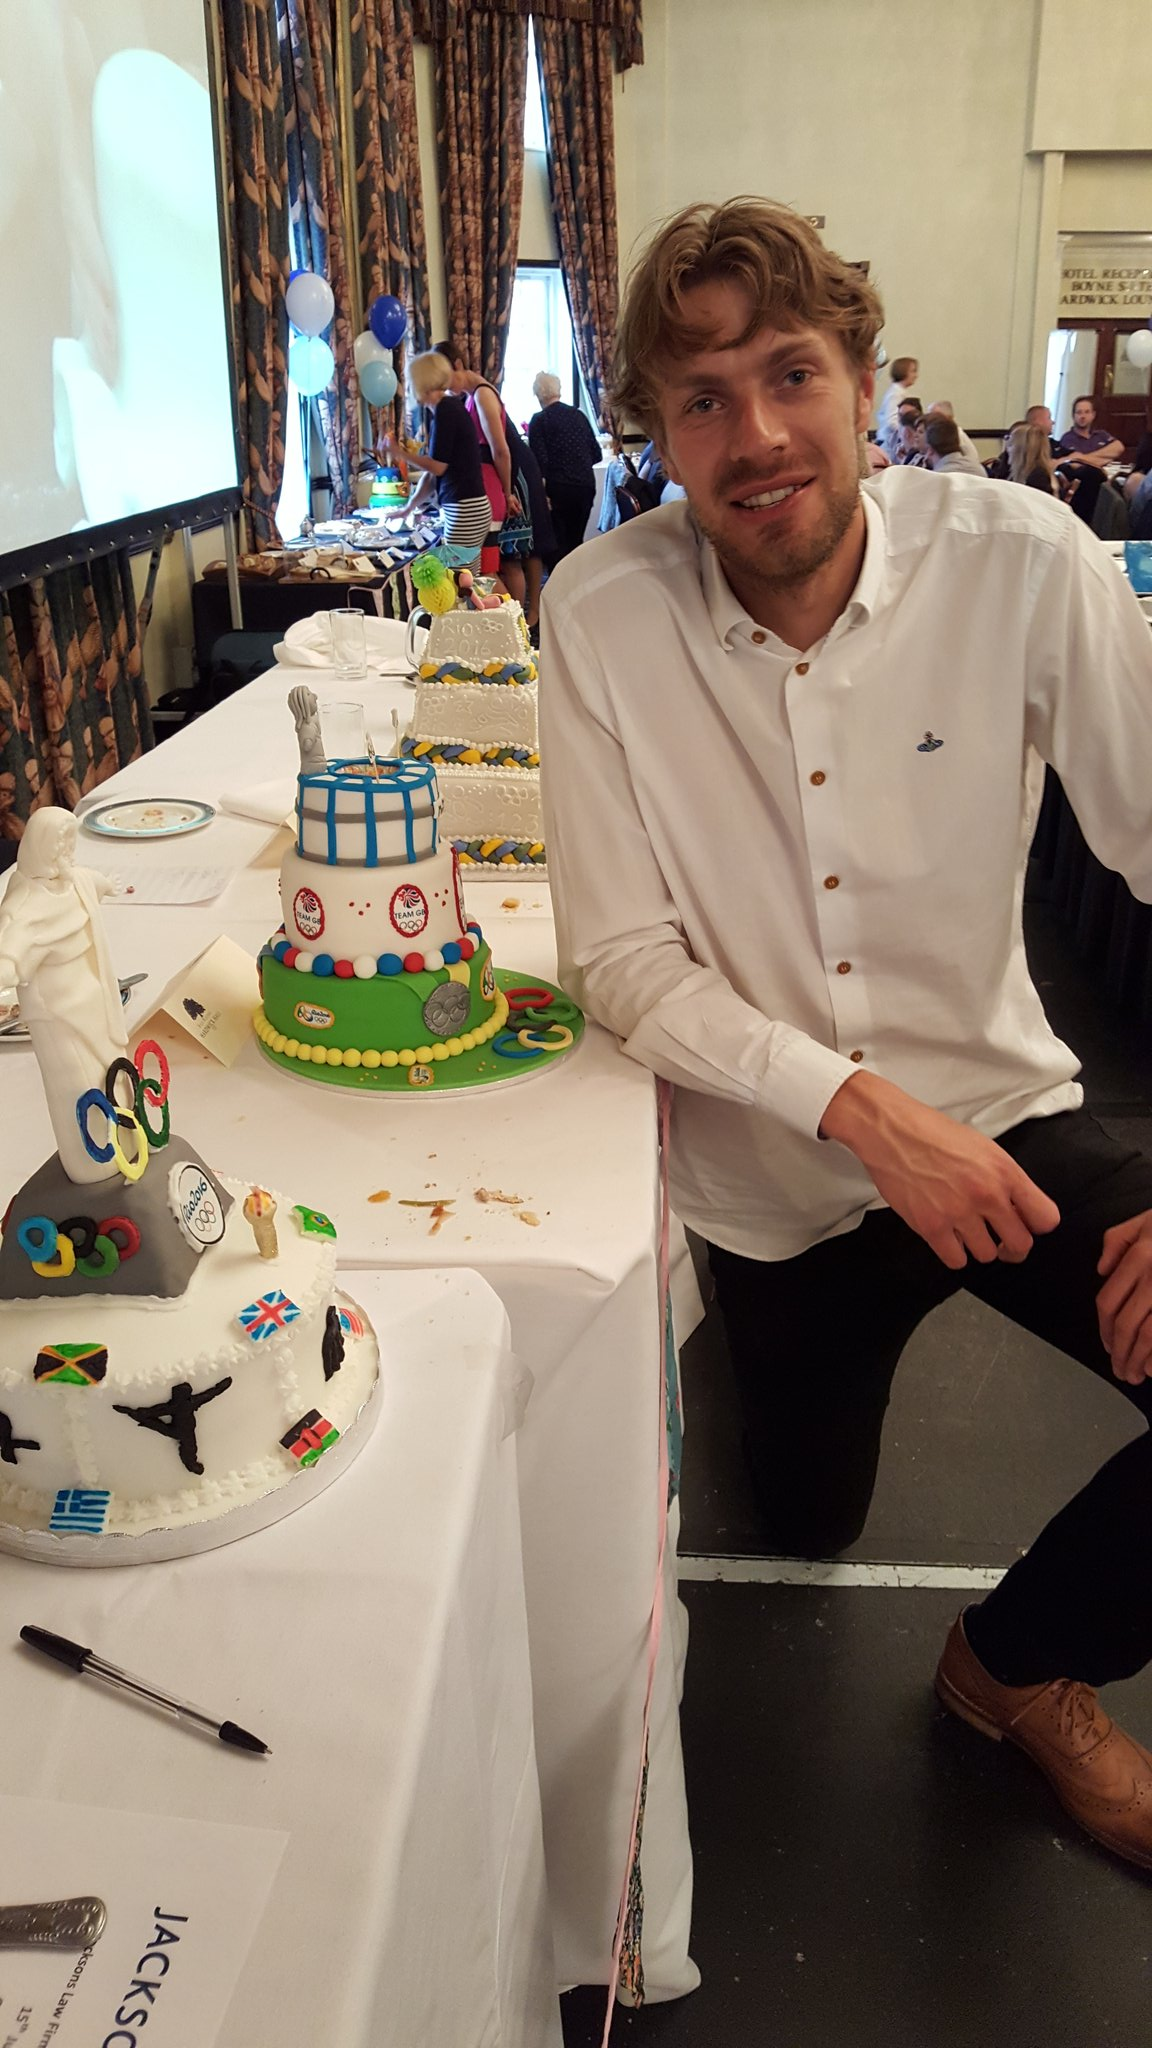 Chris Tomlinson with the line up of cakes. Photo Source: Twitter @Jacsfirth